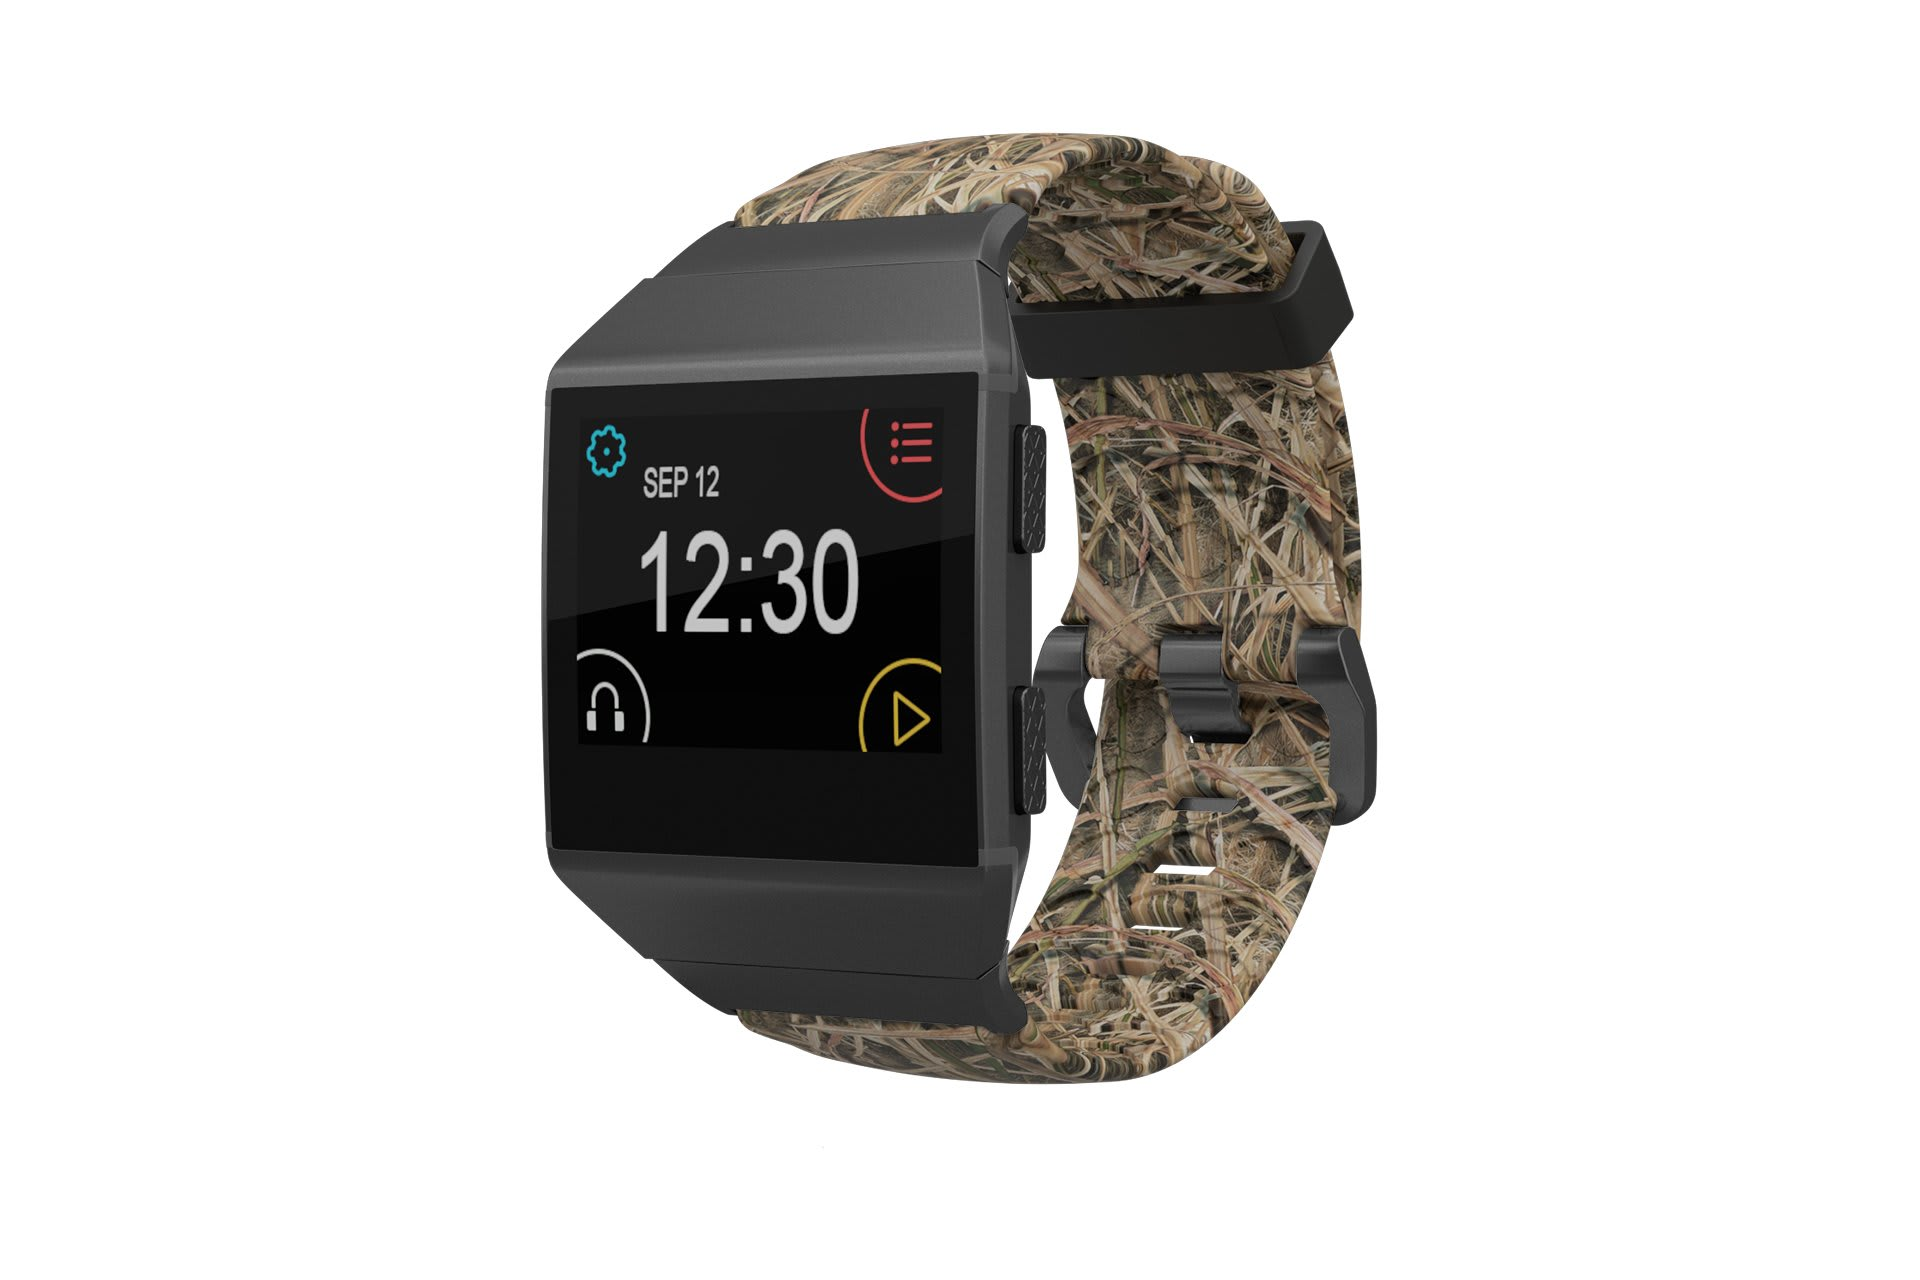 Fitbit Watch Band Ionic Mossy Oak Blades with gray hardware viewed front on